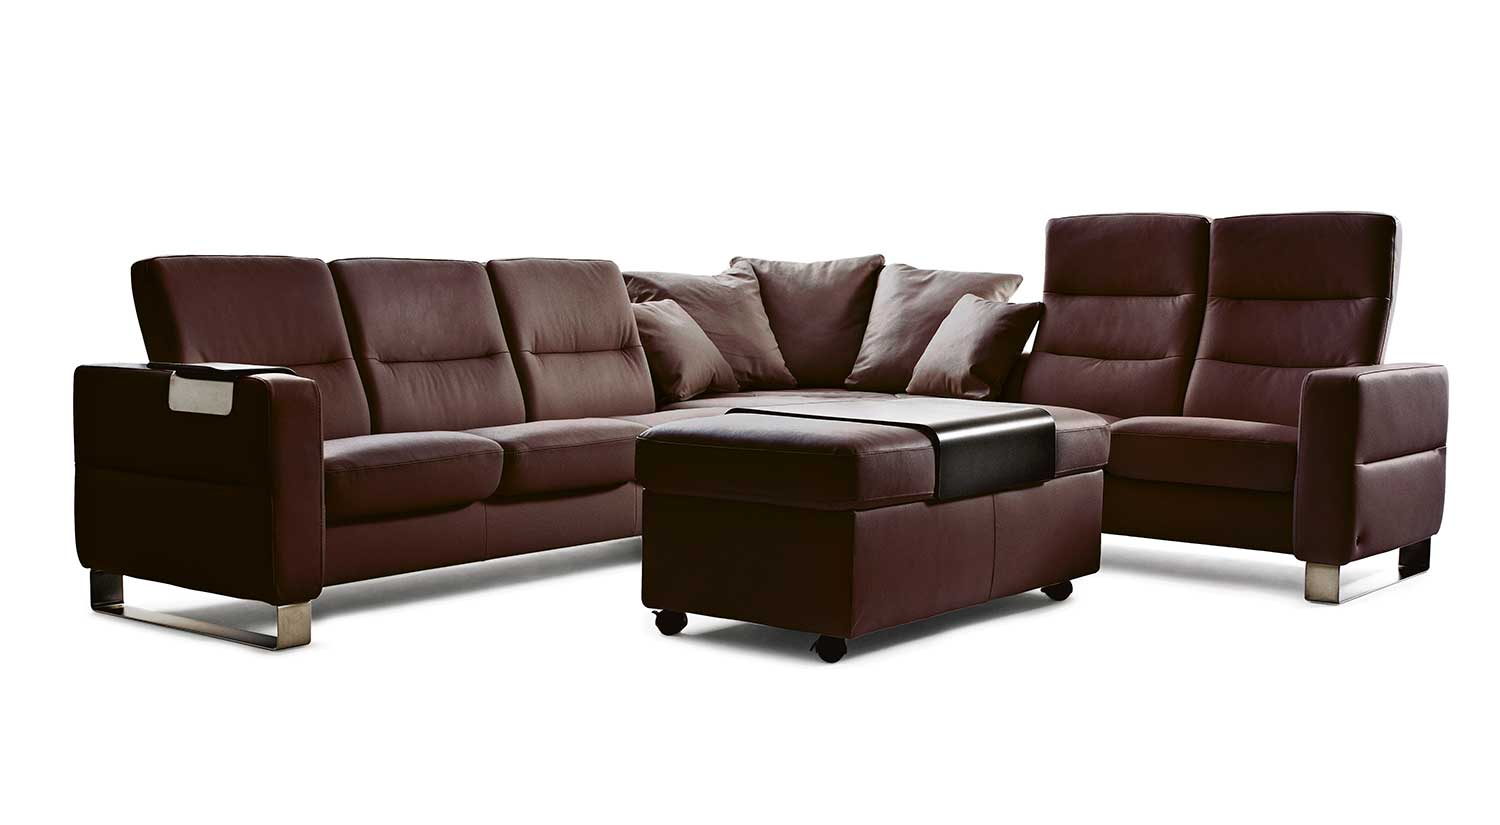 Stressless Sofa Rund Ekornes Sectional Sofa Arion Sectional By Stressless Thesofa